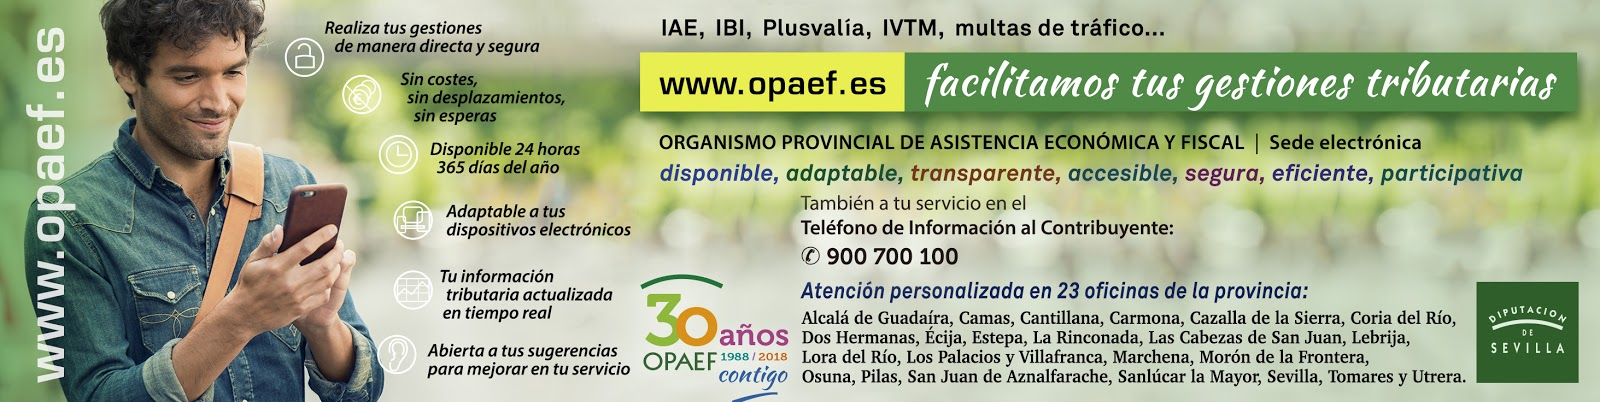 OPAEF